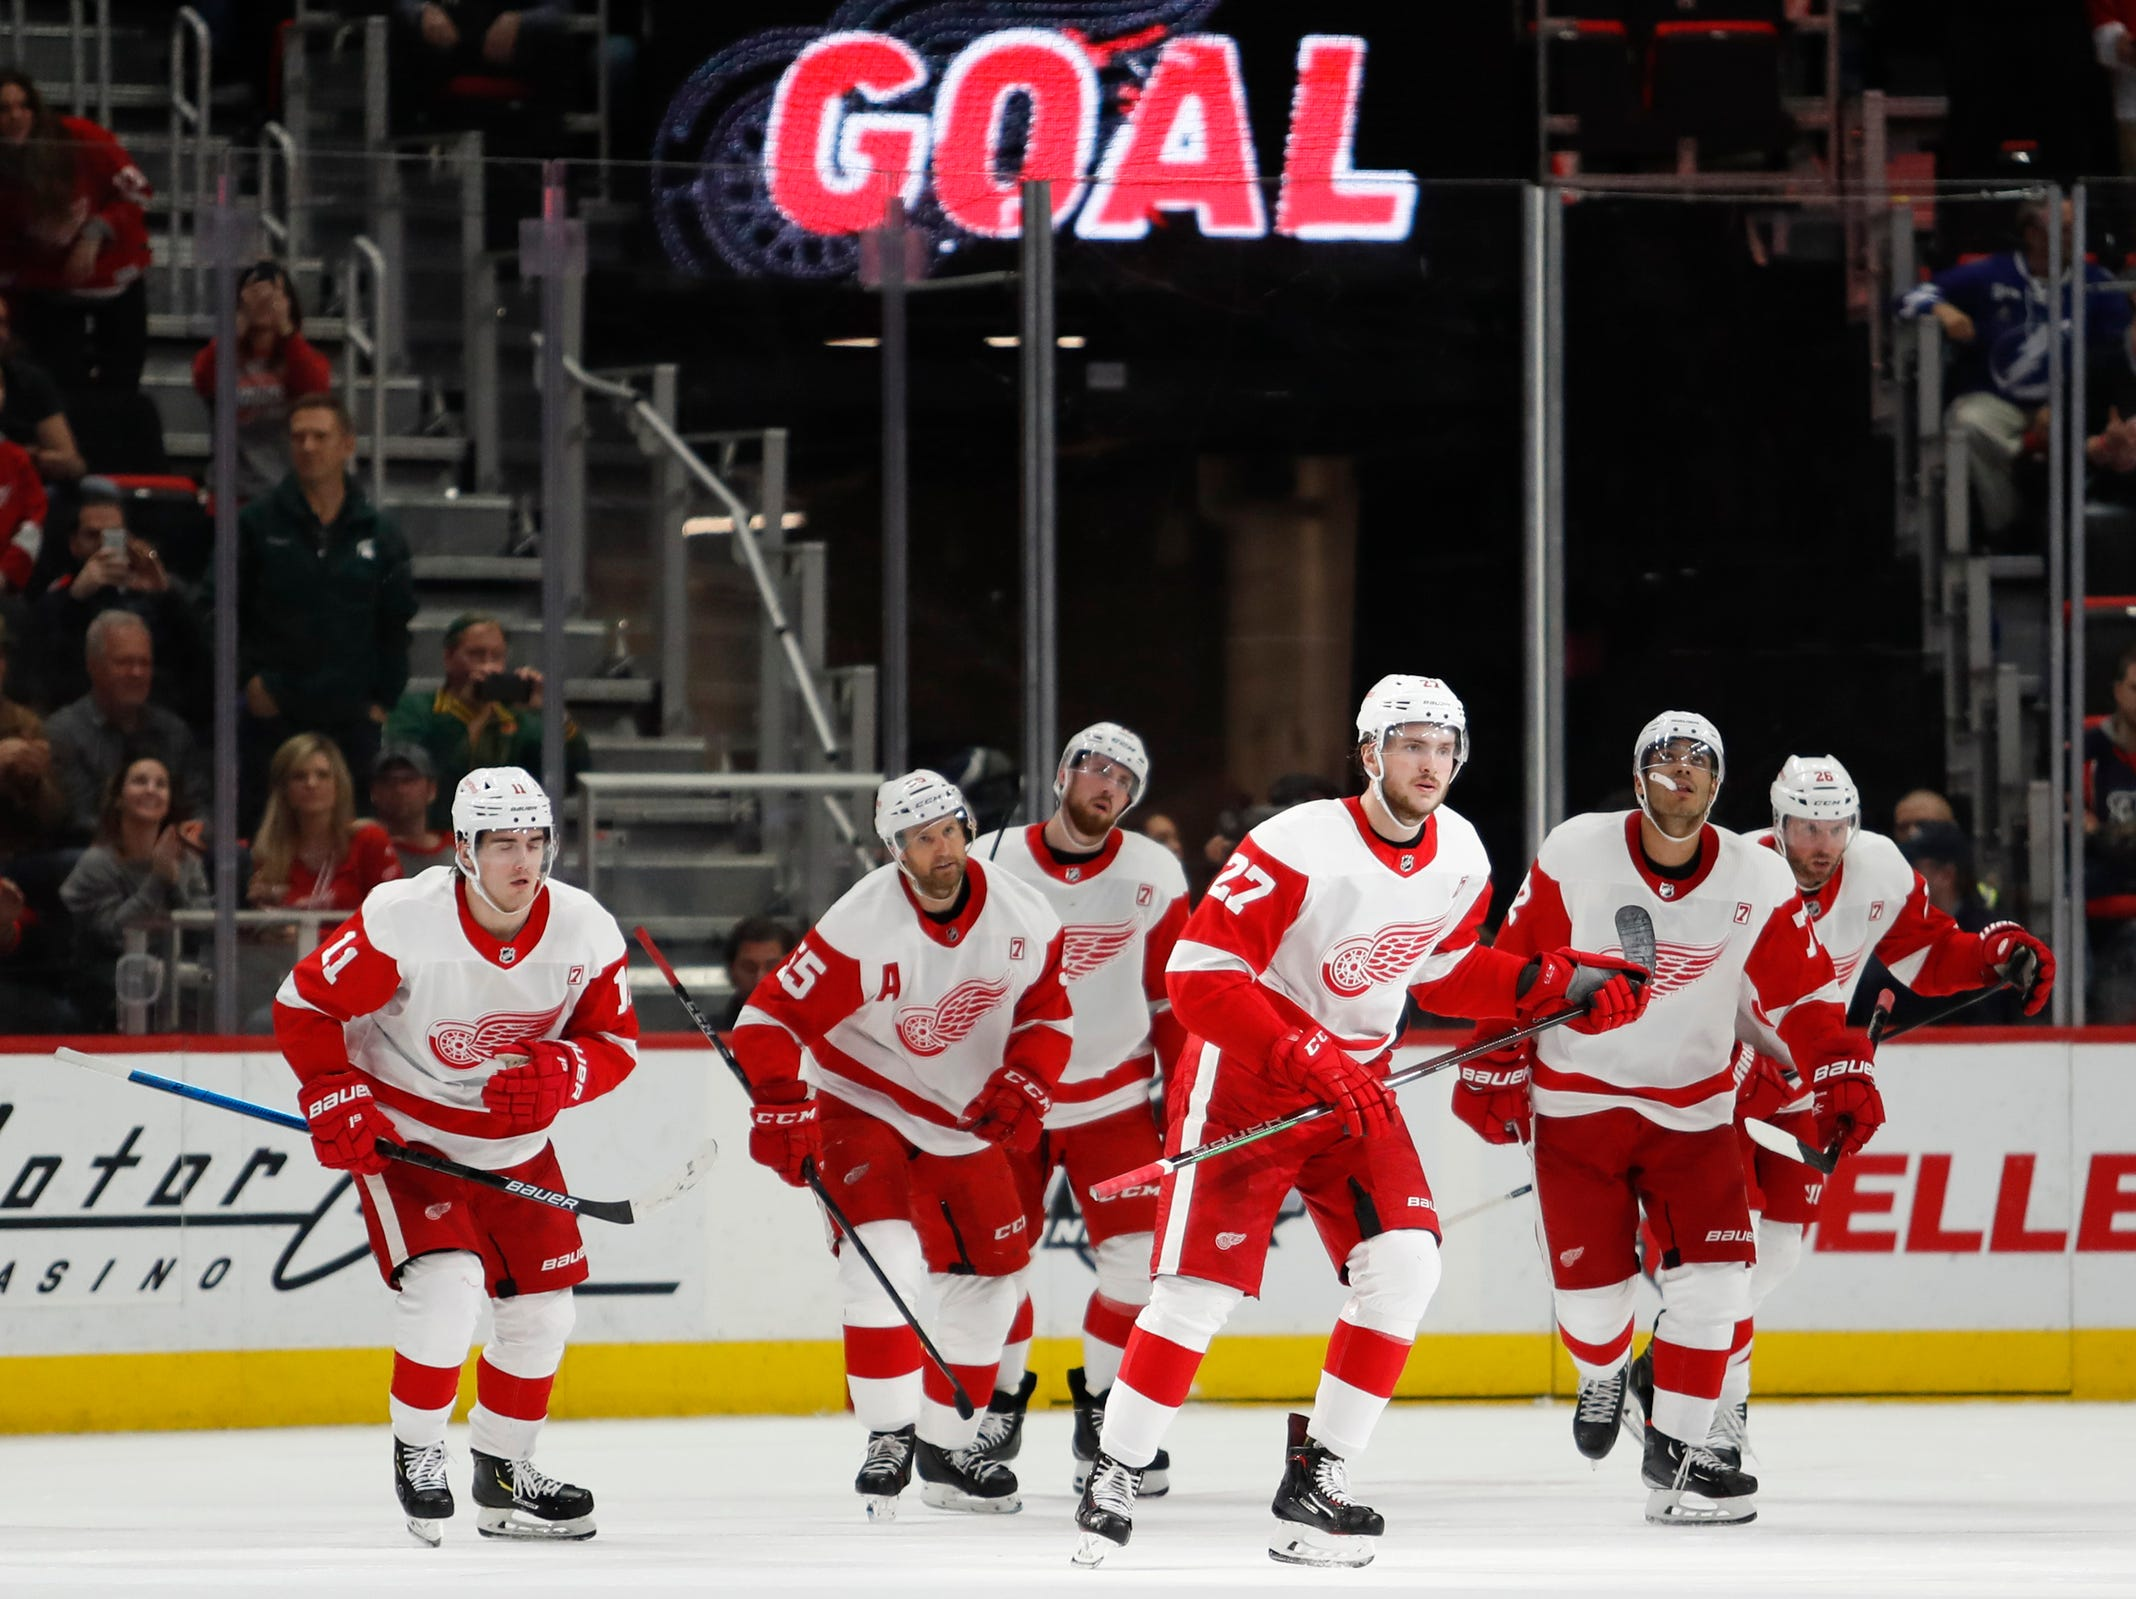 Red Wings center Michael Rasmussen (27) celebrates after scoring a goal during the third period of the Wings' 5-4 loss to the Lightning on Thursday, March 14, 2019, at Little Caesars Arena.